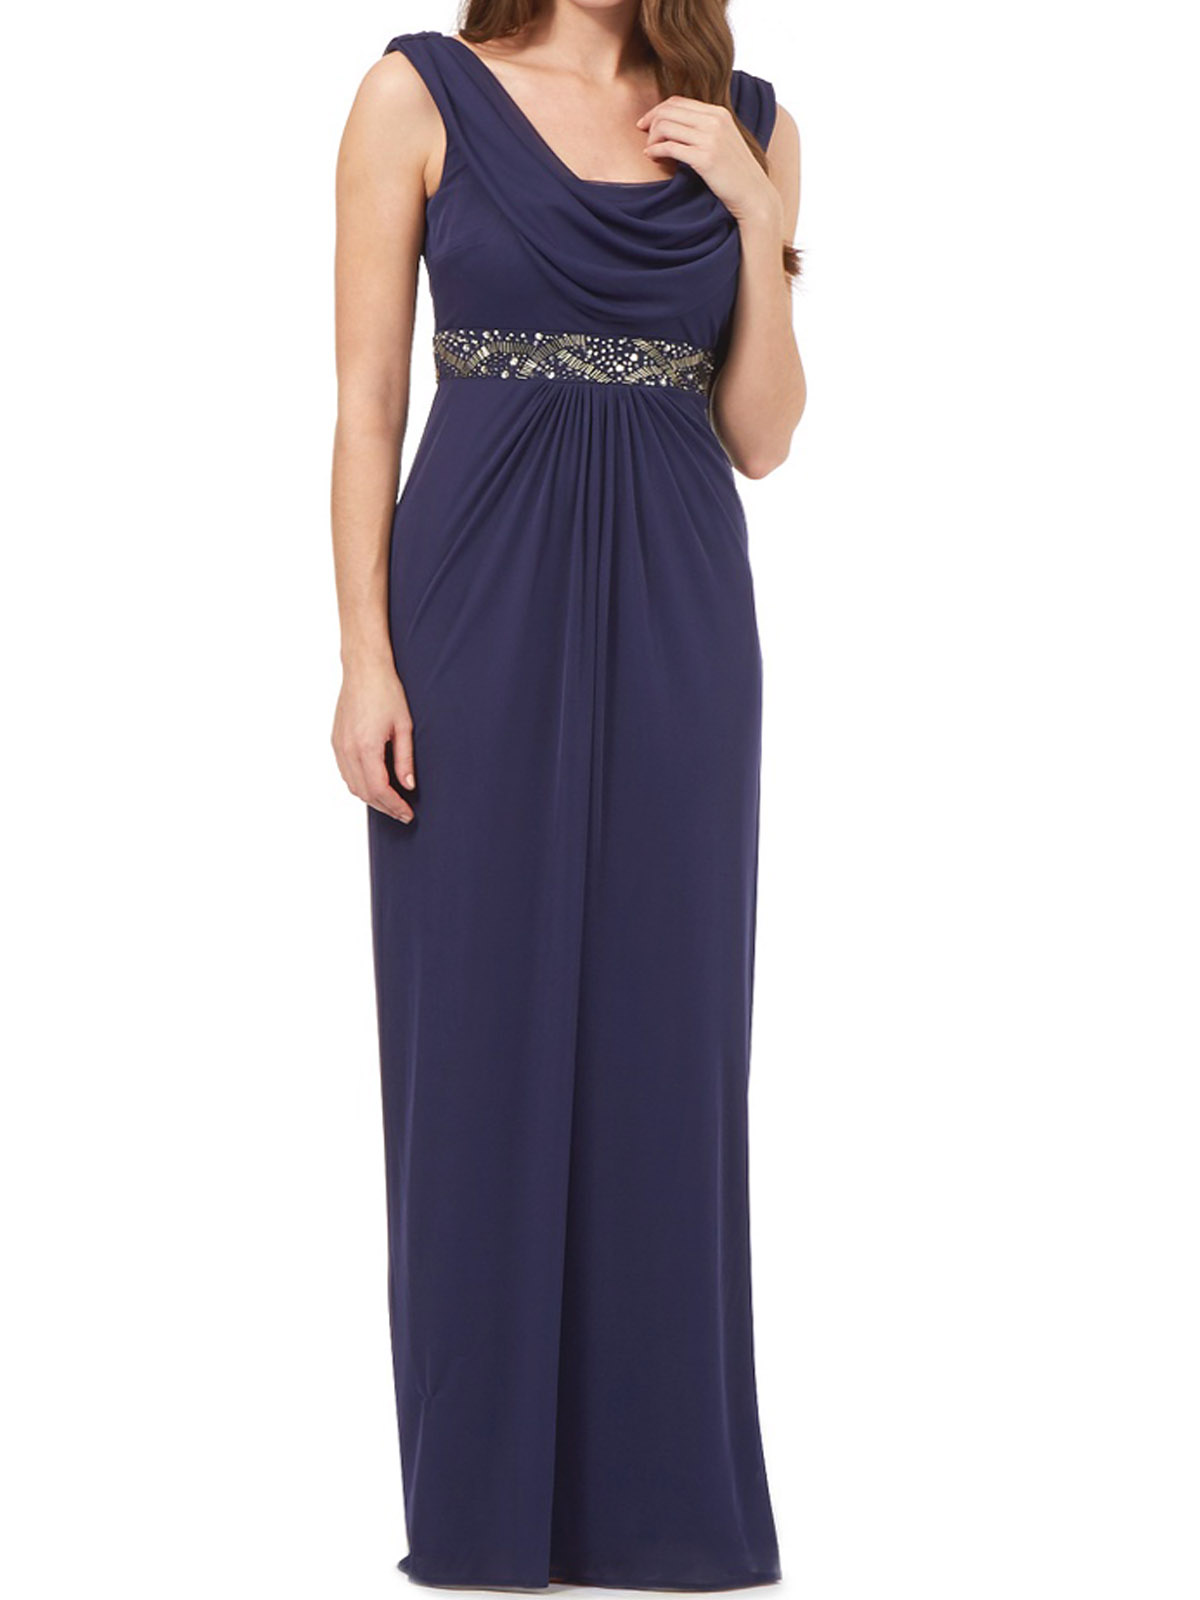 Debenhams - - D3benhams PURPLE Priya Embellished Cowl Neck Maxi ...